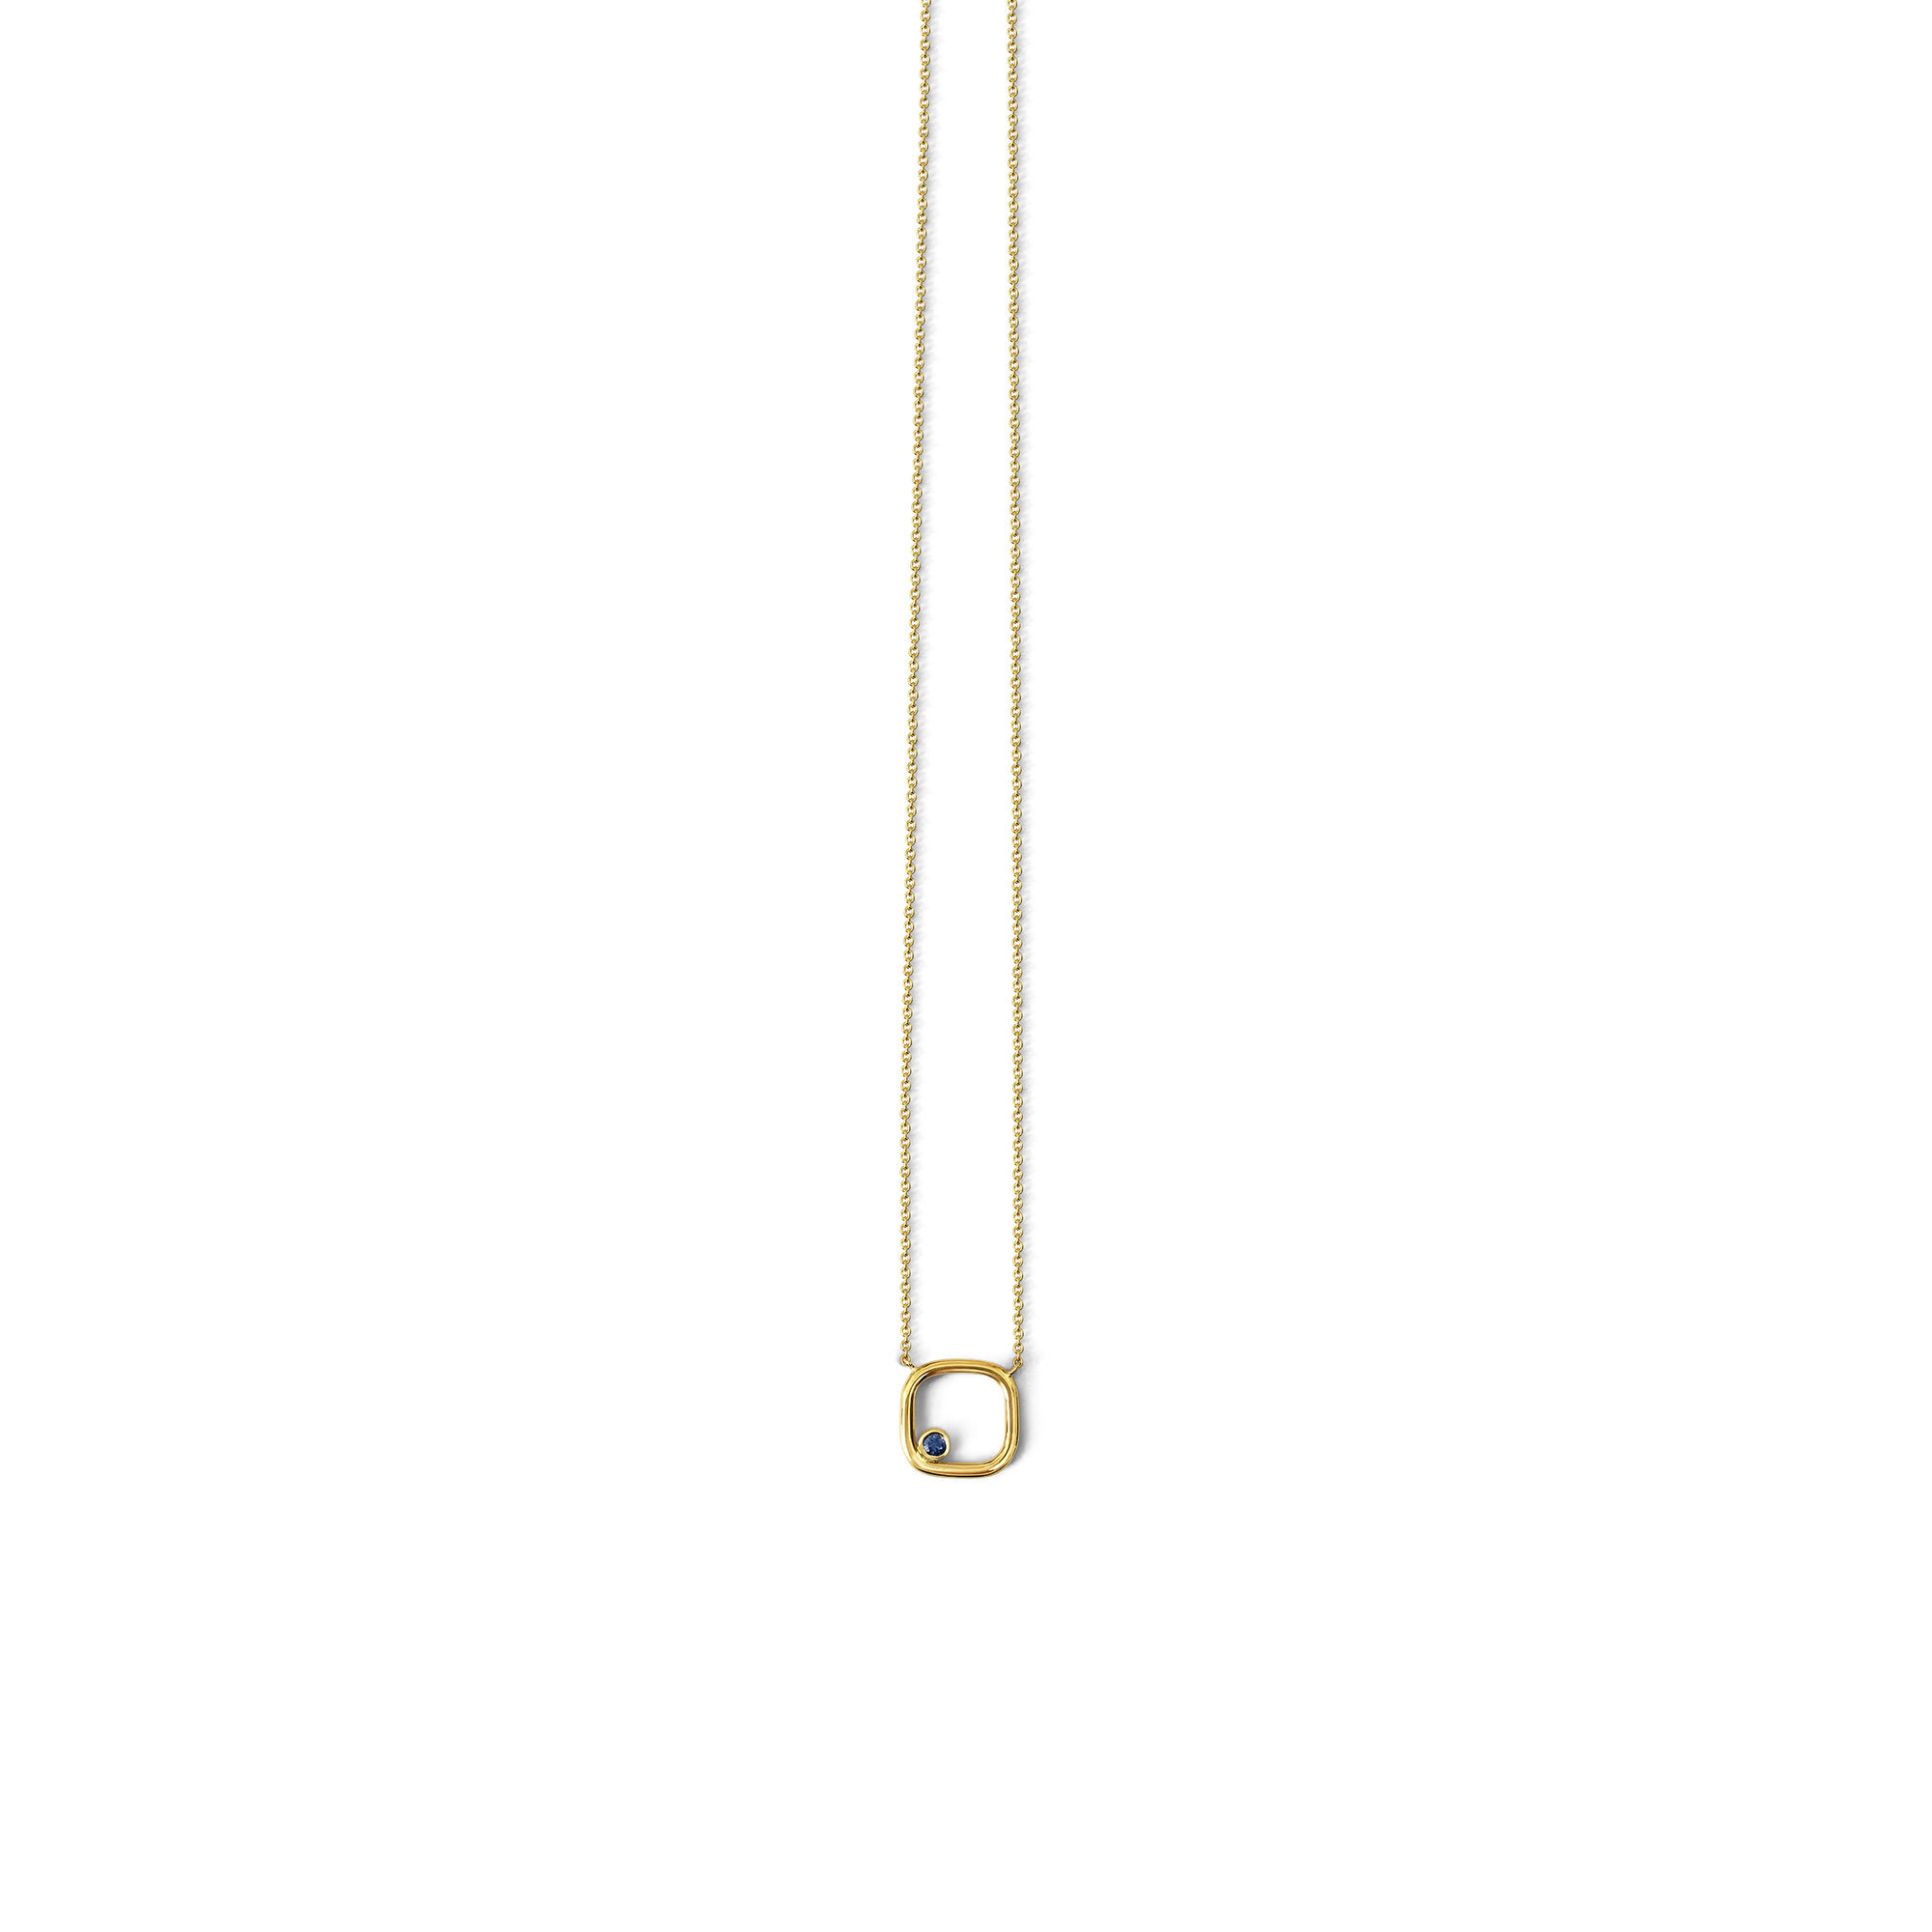 Sapphire pendant mounted in 18ct yellow gold.